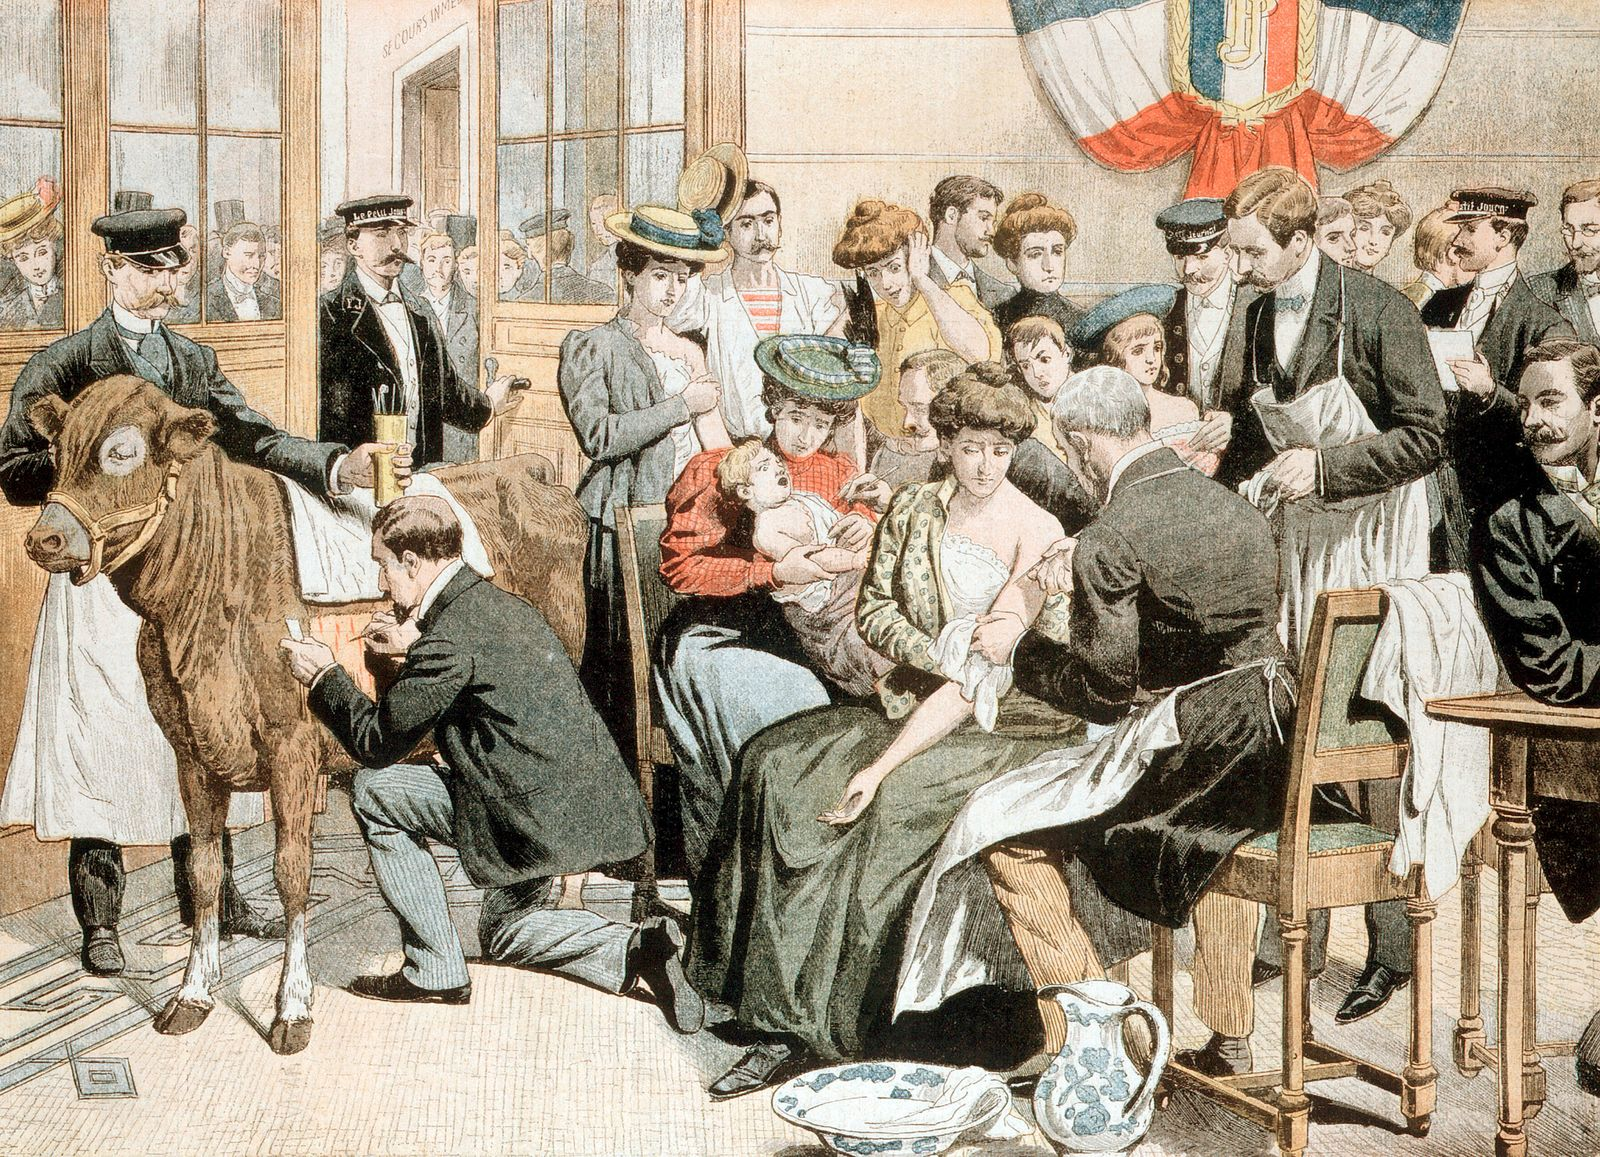 Free Smallpox vaccination clinic on premises of French newspaper, Paris.